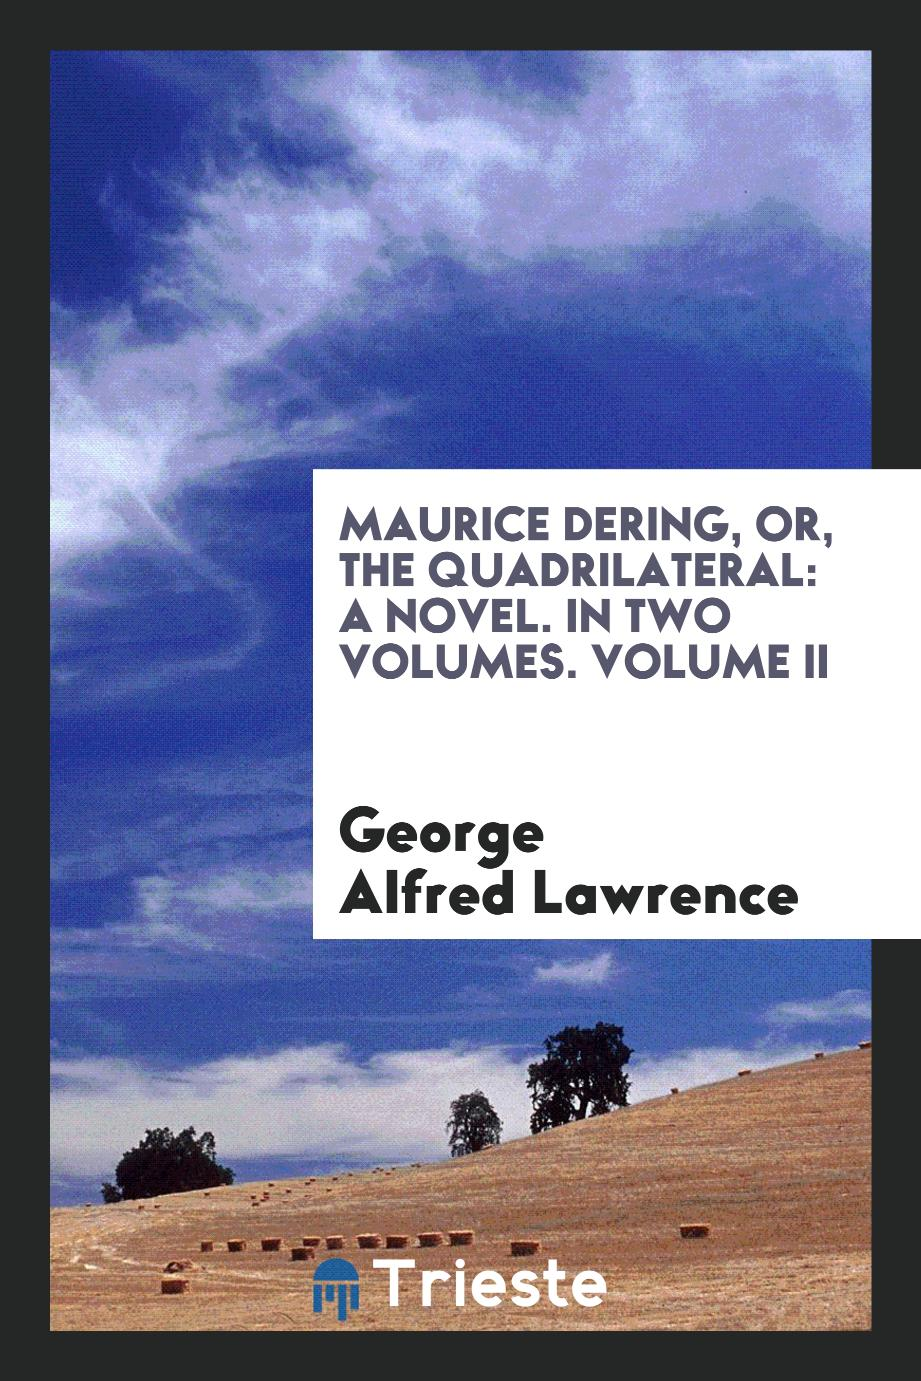 Maurice Dering, or, The quadrilateral: a novel. In two volumes. Volume II